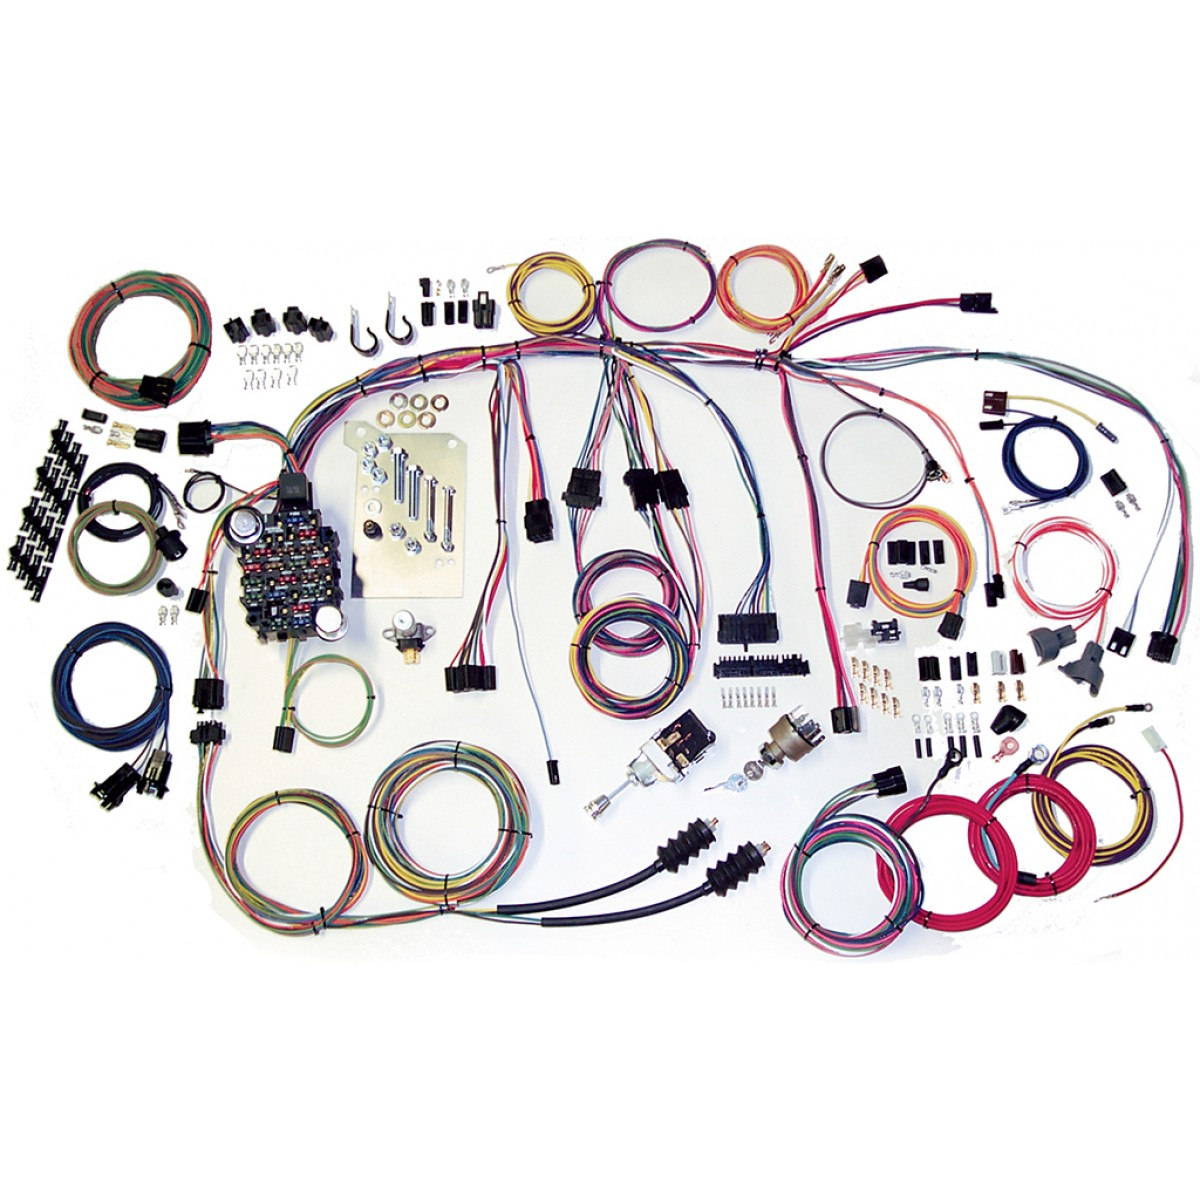 chevy c10 wiring harness complete wiring harness kit 1960 1966 rh code510 com 66 chevy truck wiring harness 1966 chevy c10 wiring harness